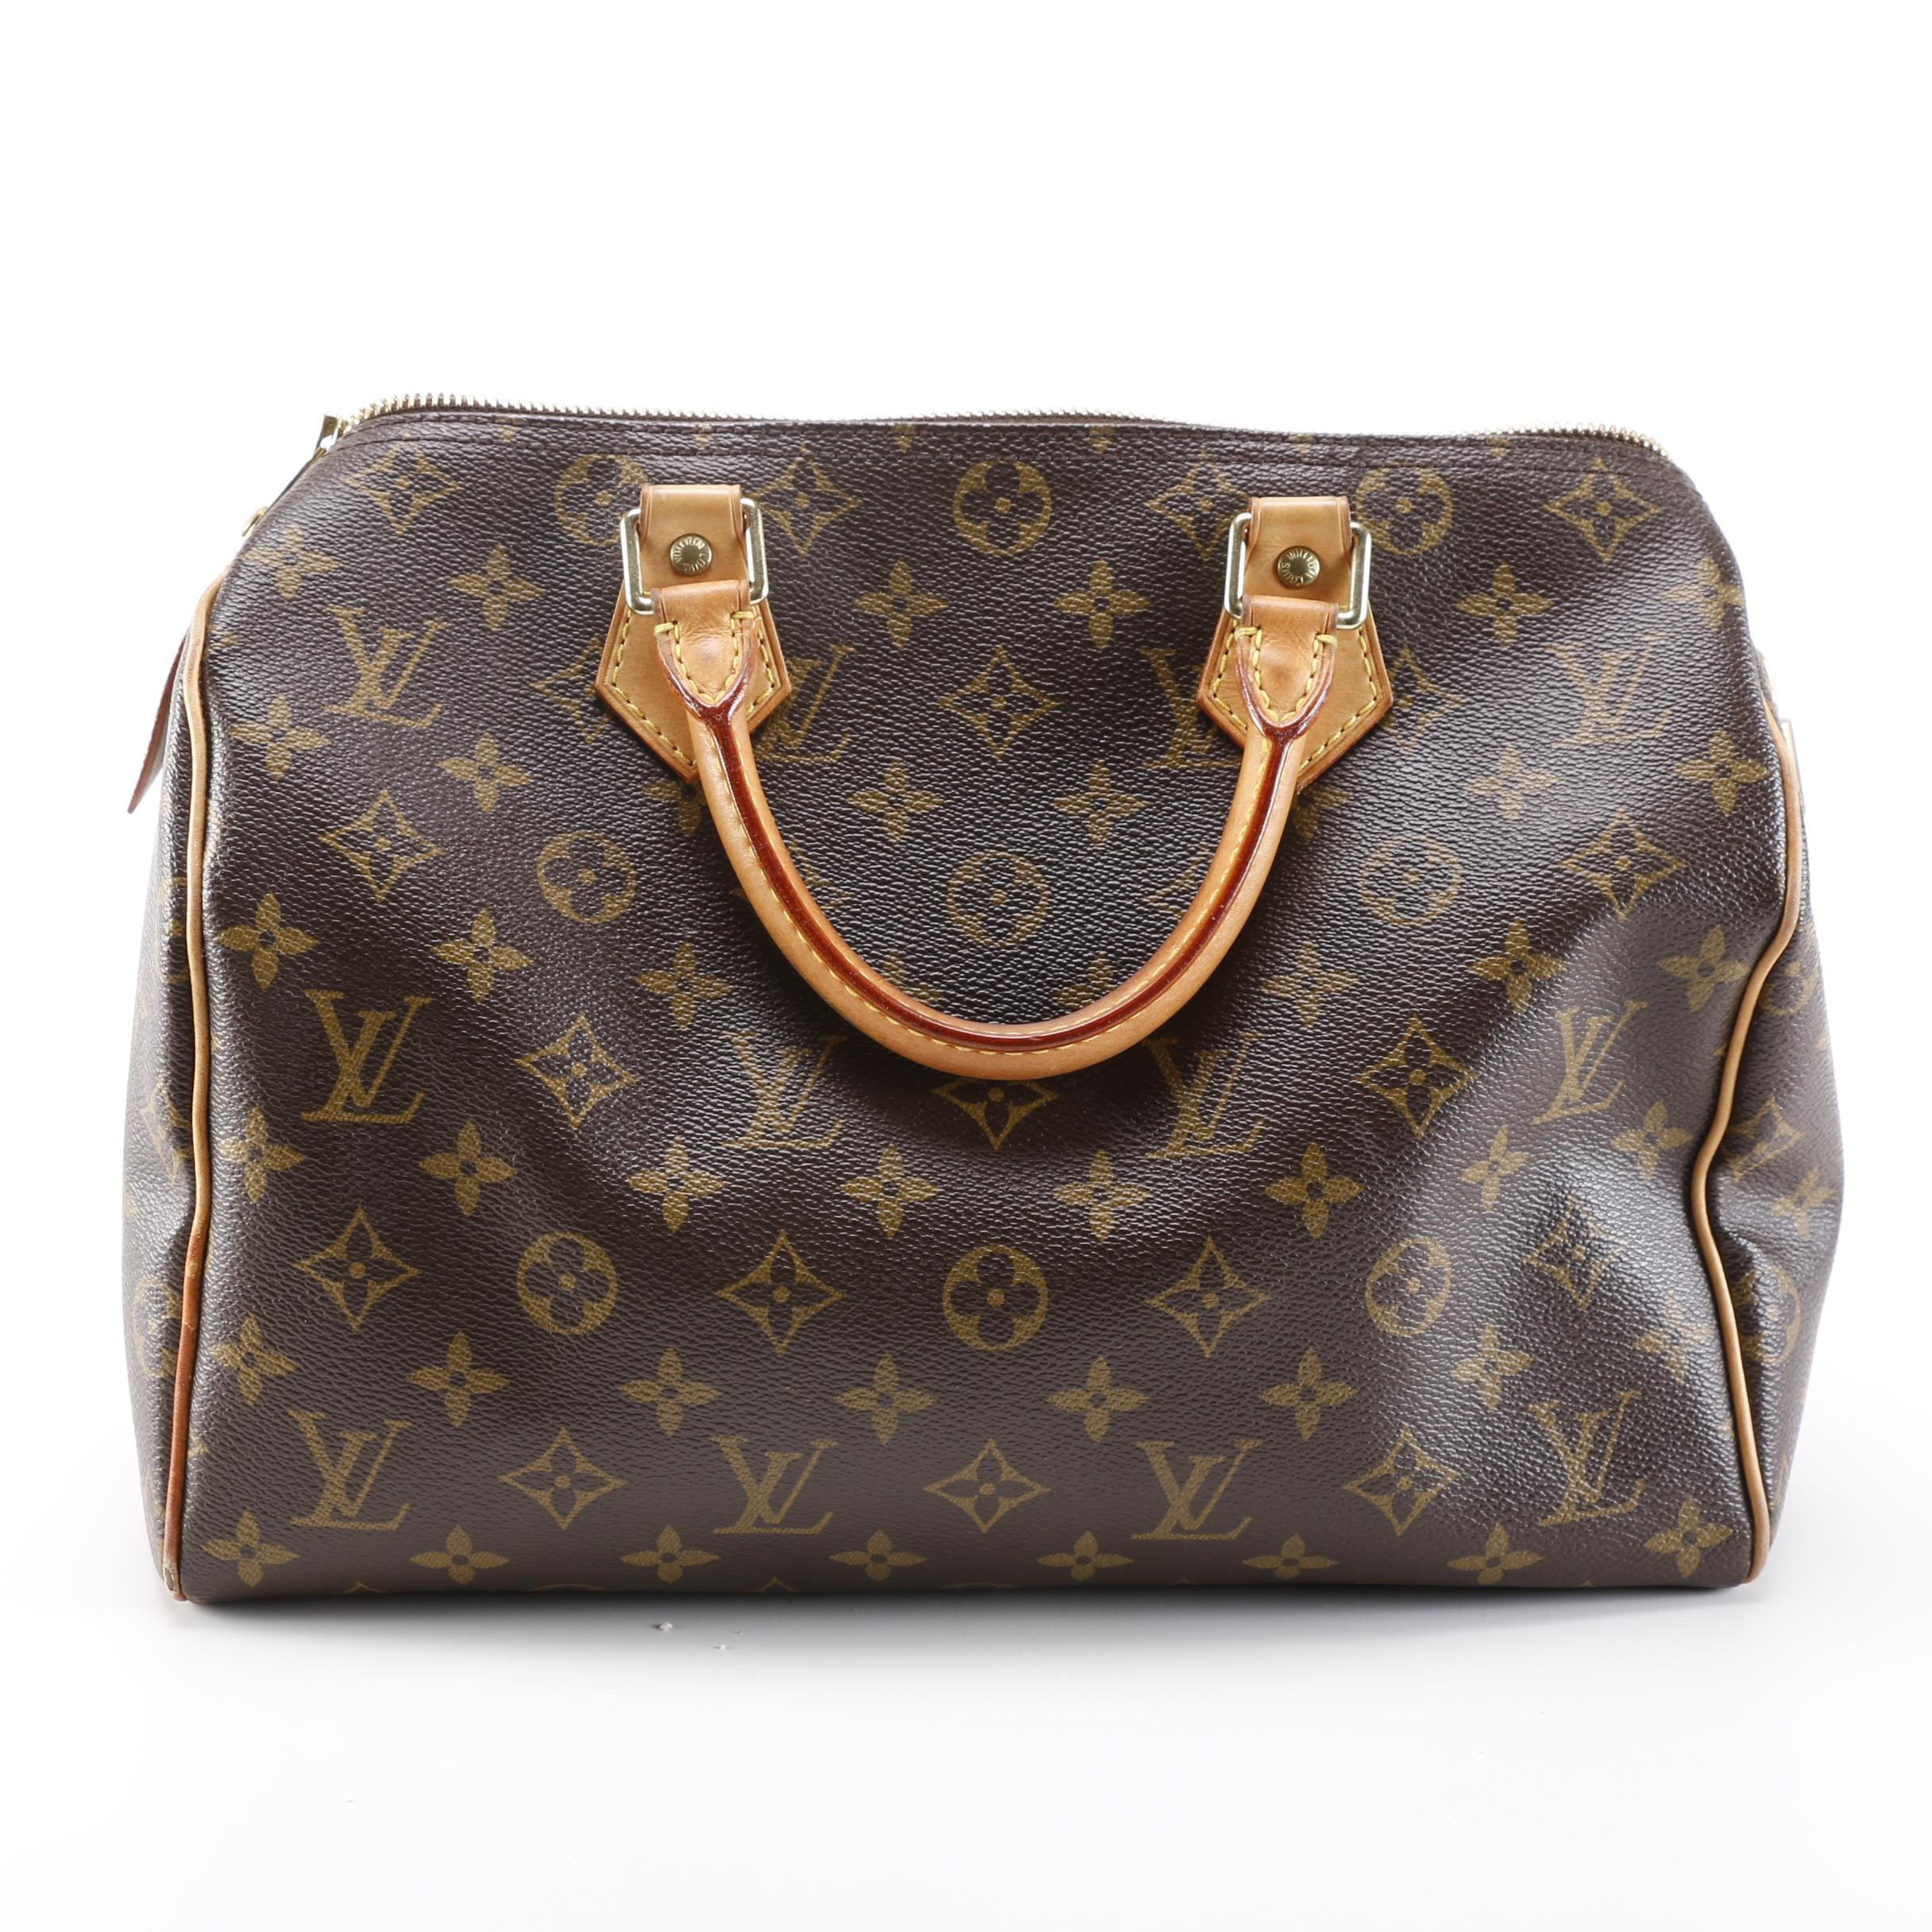 2006 Louis Vuitton Monogram Canvas Speedy Handbag